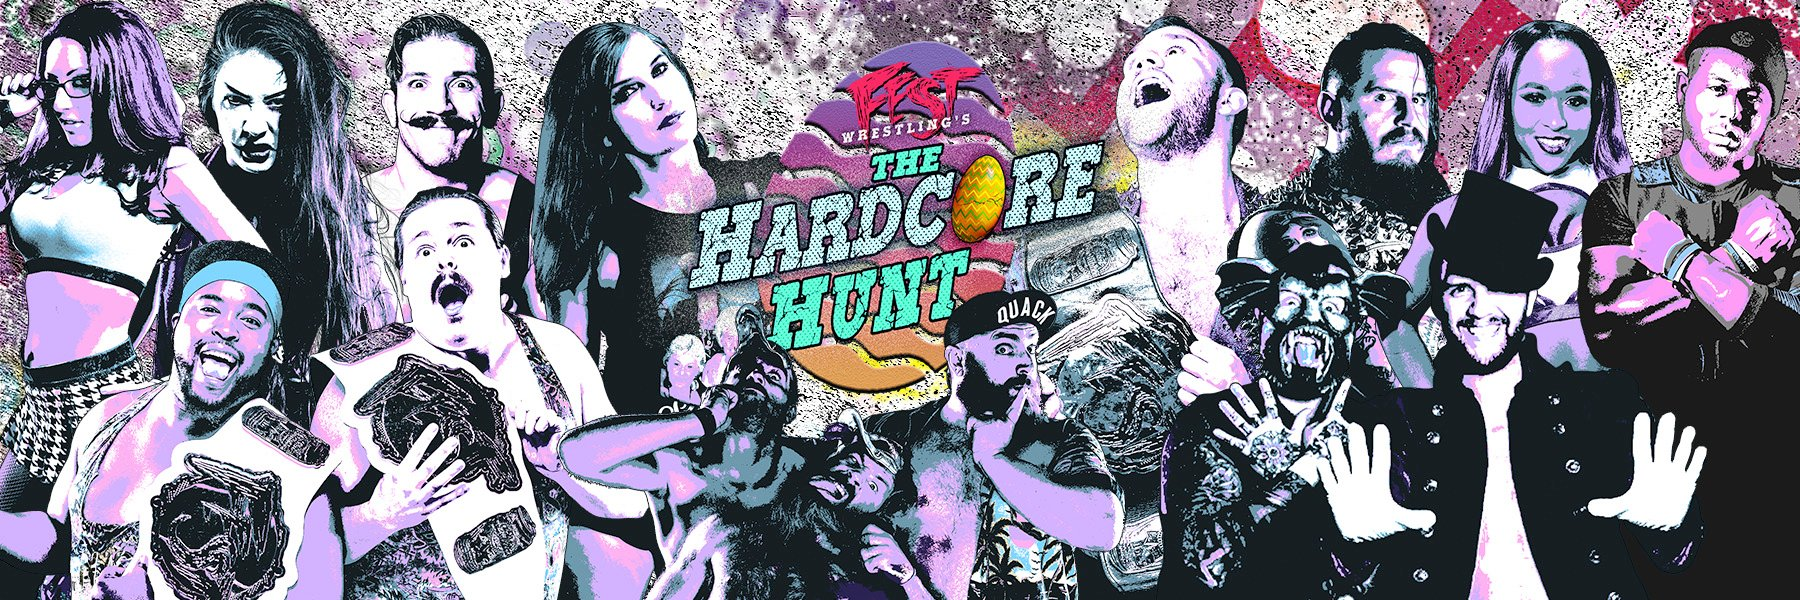 FEST Wrestling - The Hardcore Hunt 3.31.18 - NOW AVAILABLE